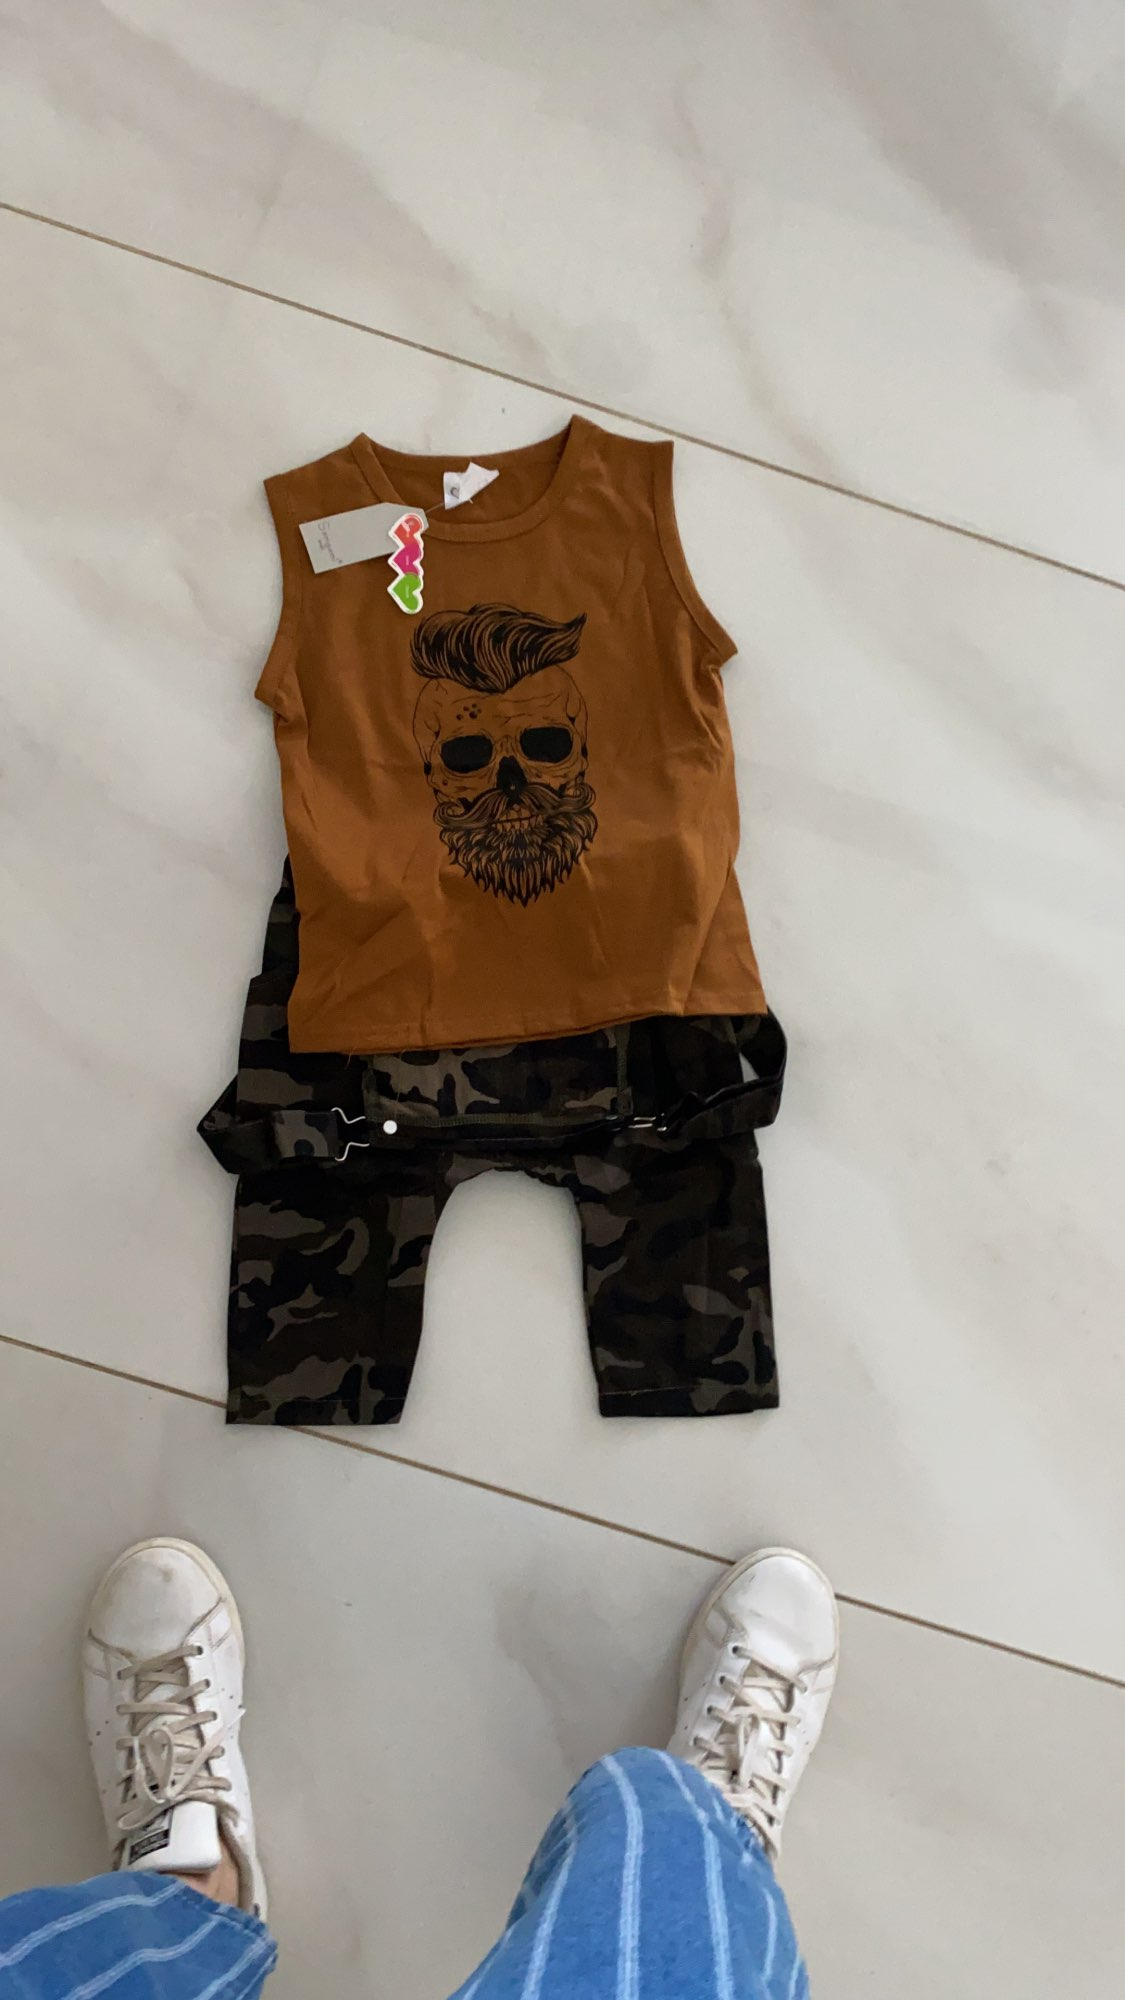 Summer Toddler Baby Boys Two Piece Casual Clothes Sleeveless Printing Tank Top Vest Camo Overalls Outfits Set photo review